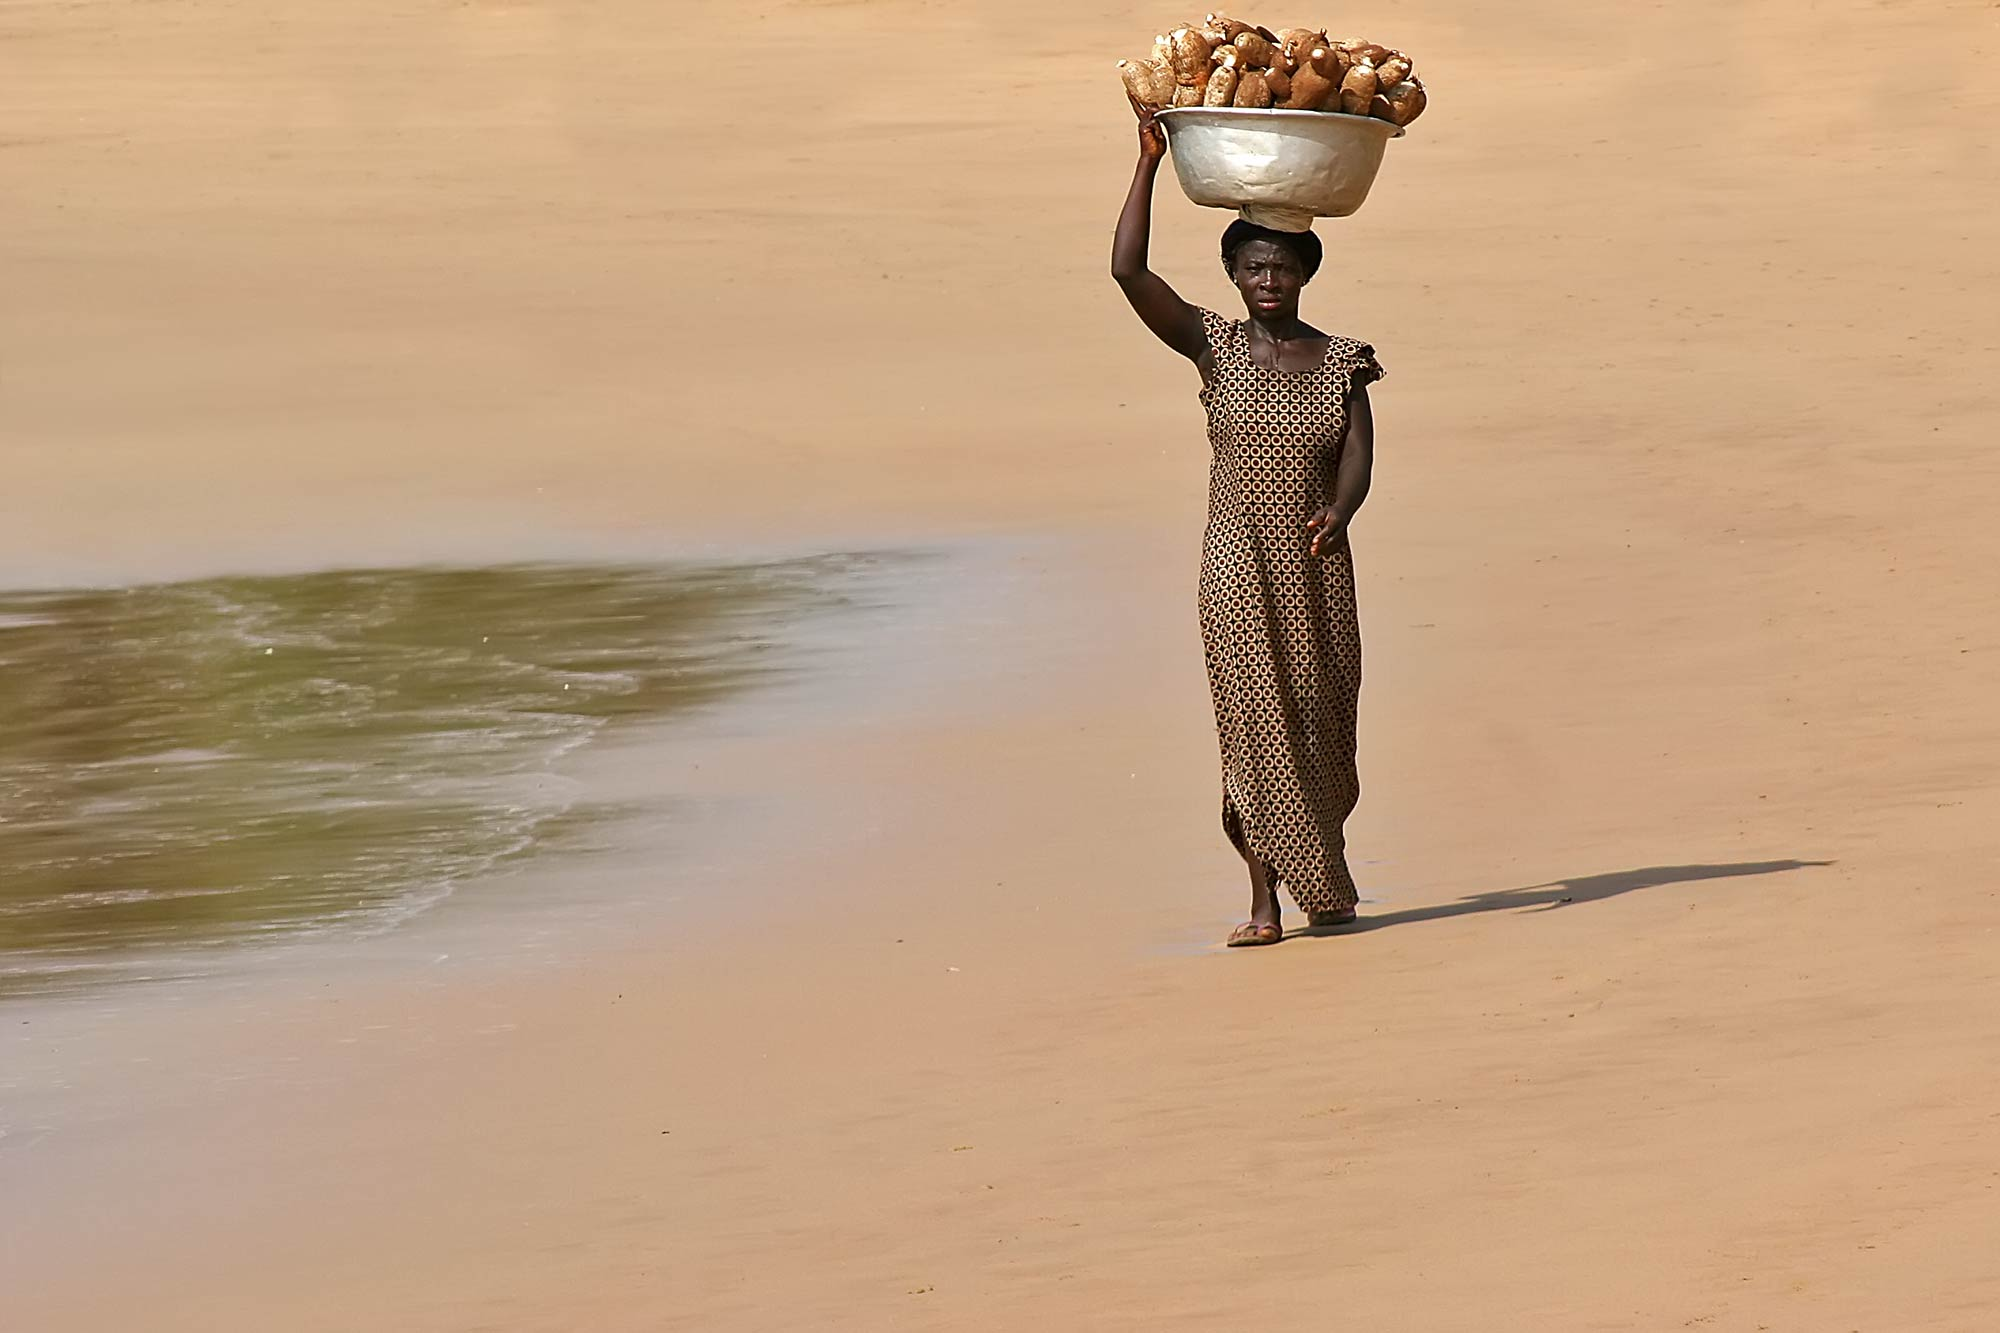 woman-walking-on-takoradi-beach-ghana-africa